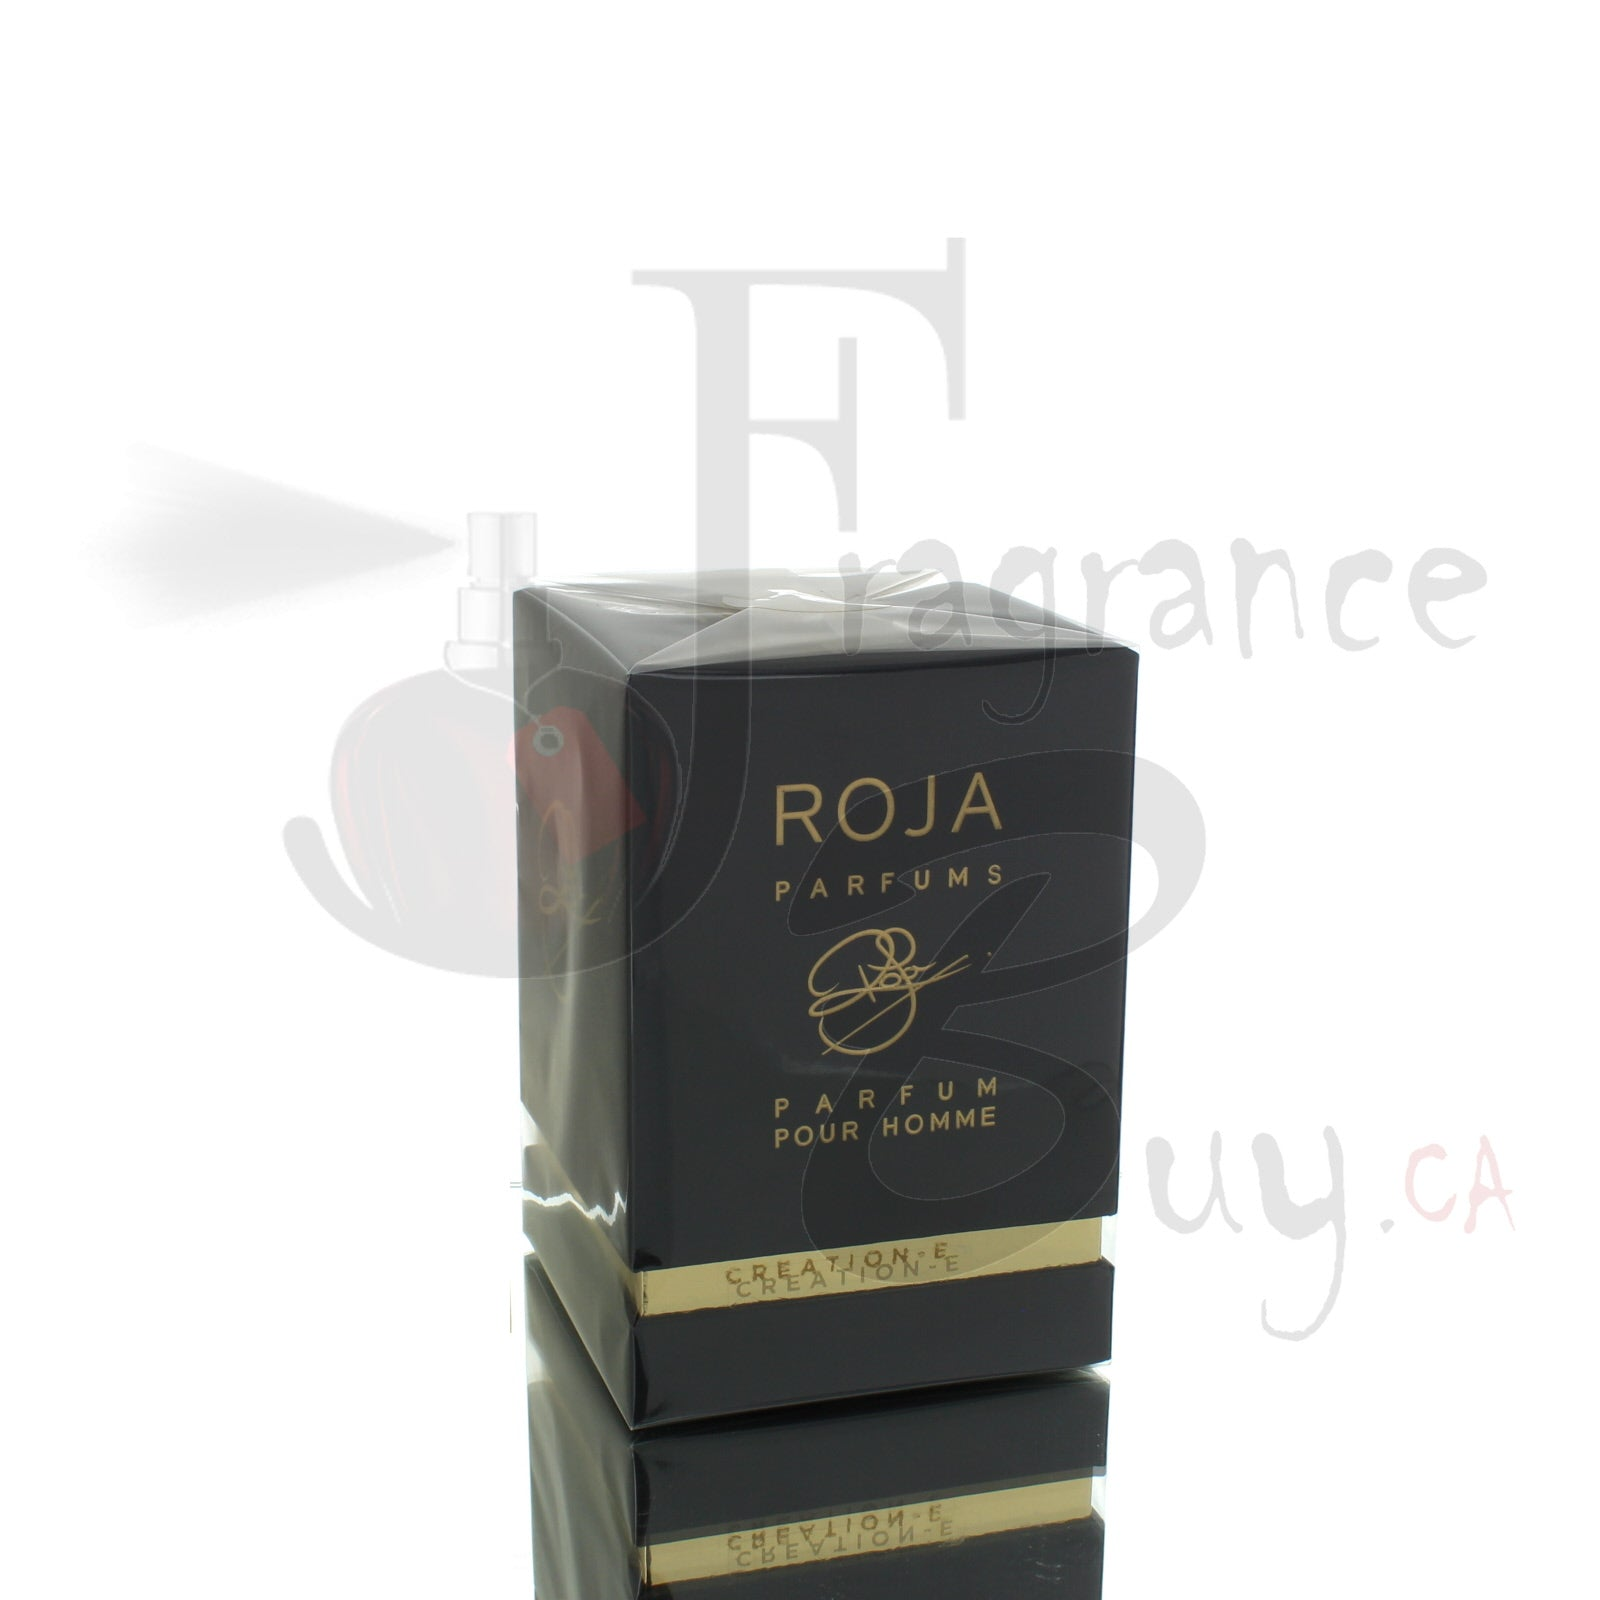 Roja Creation E Parfum For Man